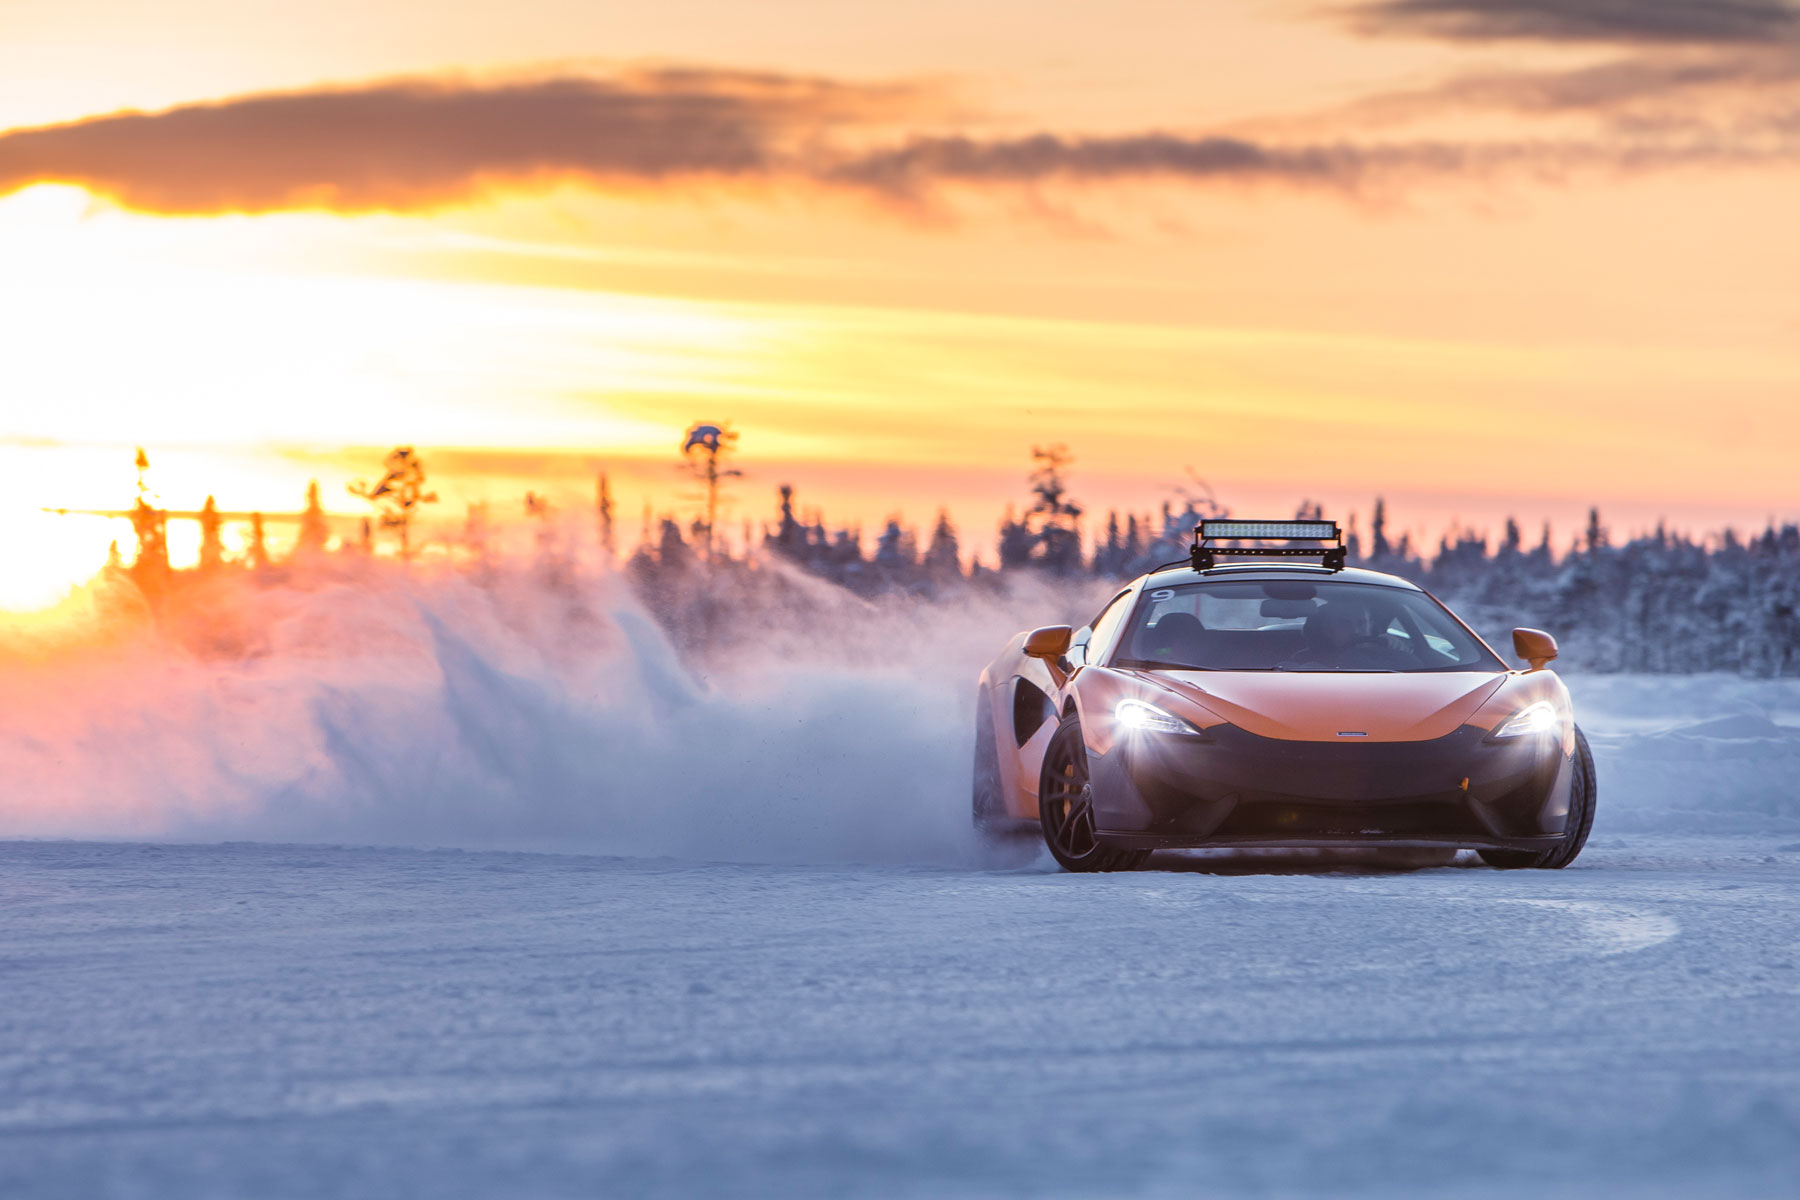 McLaren Arctic driving adventure